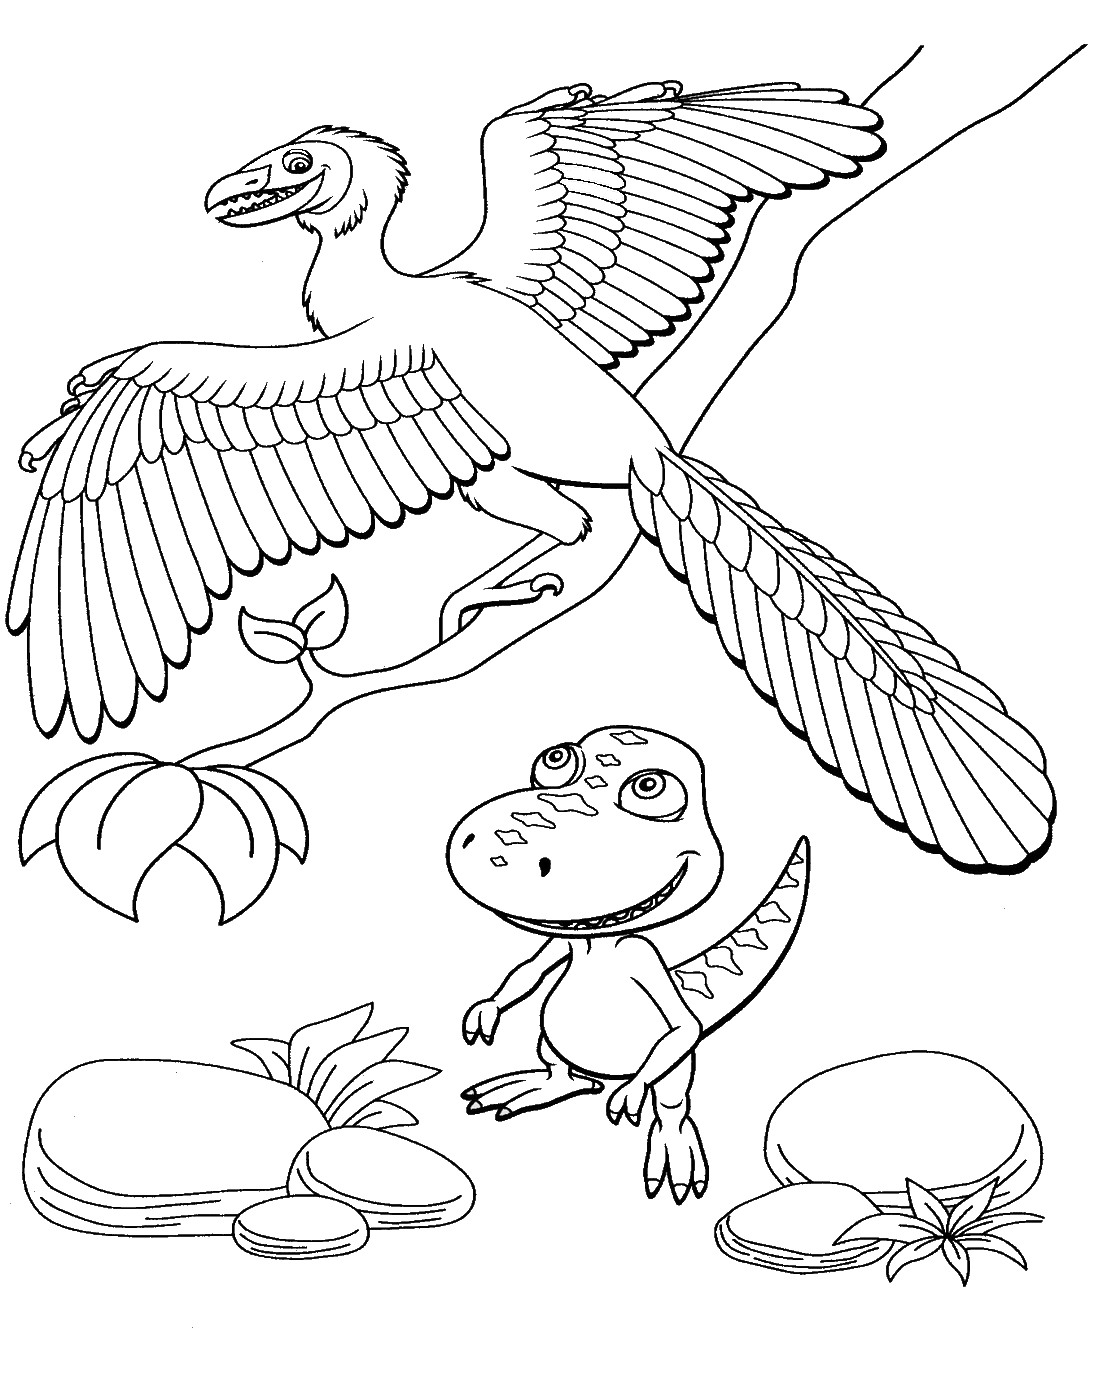 Dinosaur train coloring pages donut